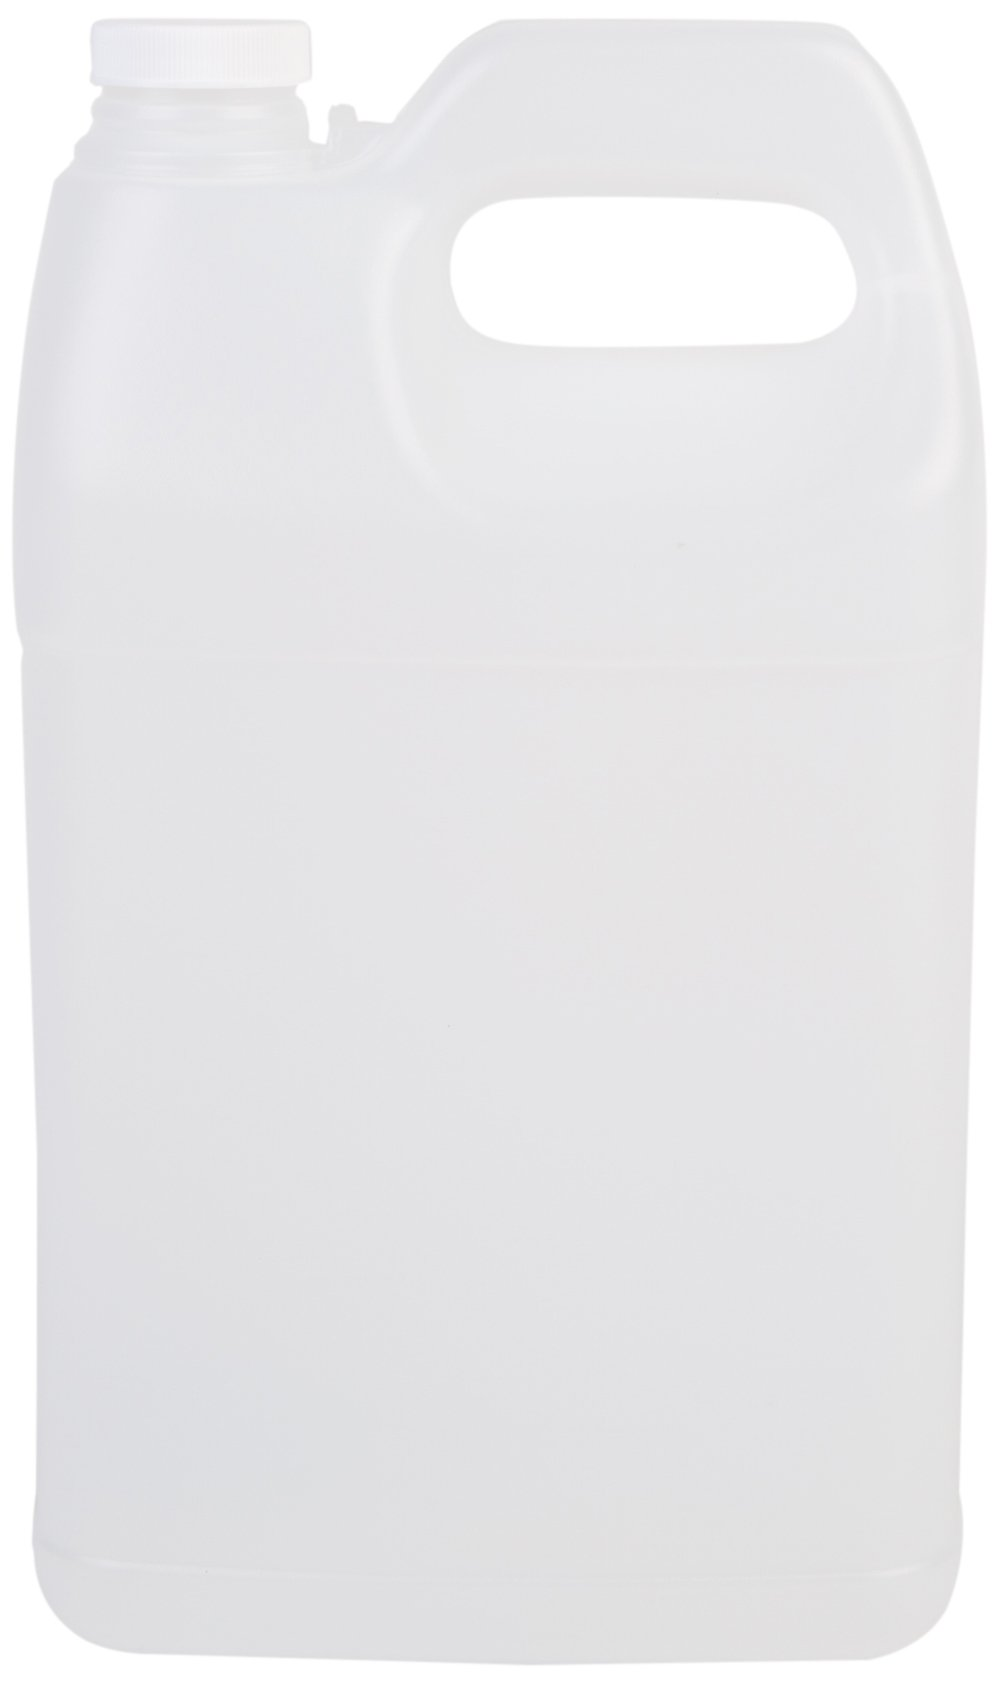 Hudson Exchange F-Style HDPE Plastic Jug with 38 mm Caps, 1 gal, Natural, 6 Piece